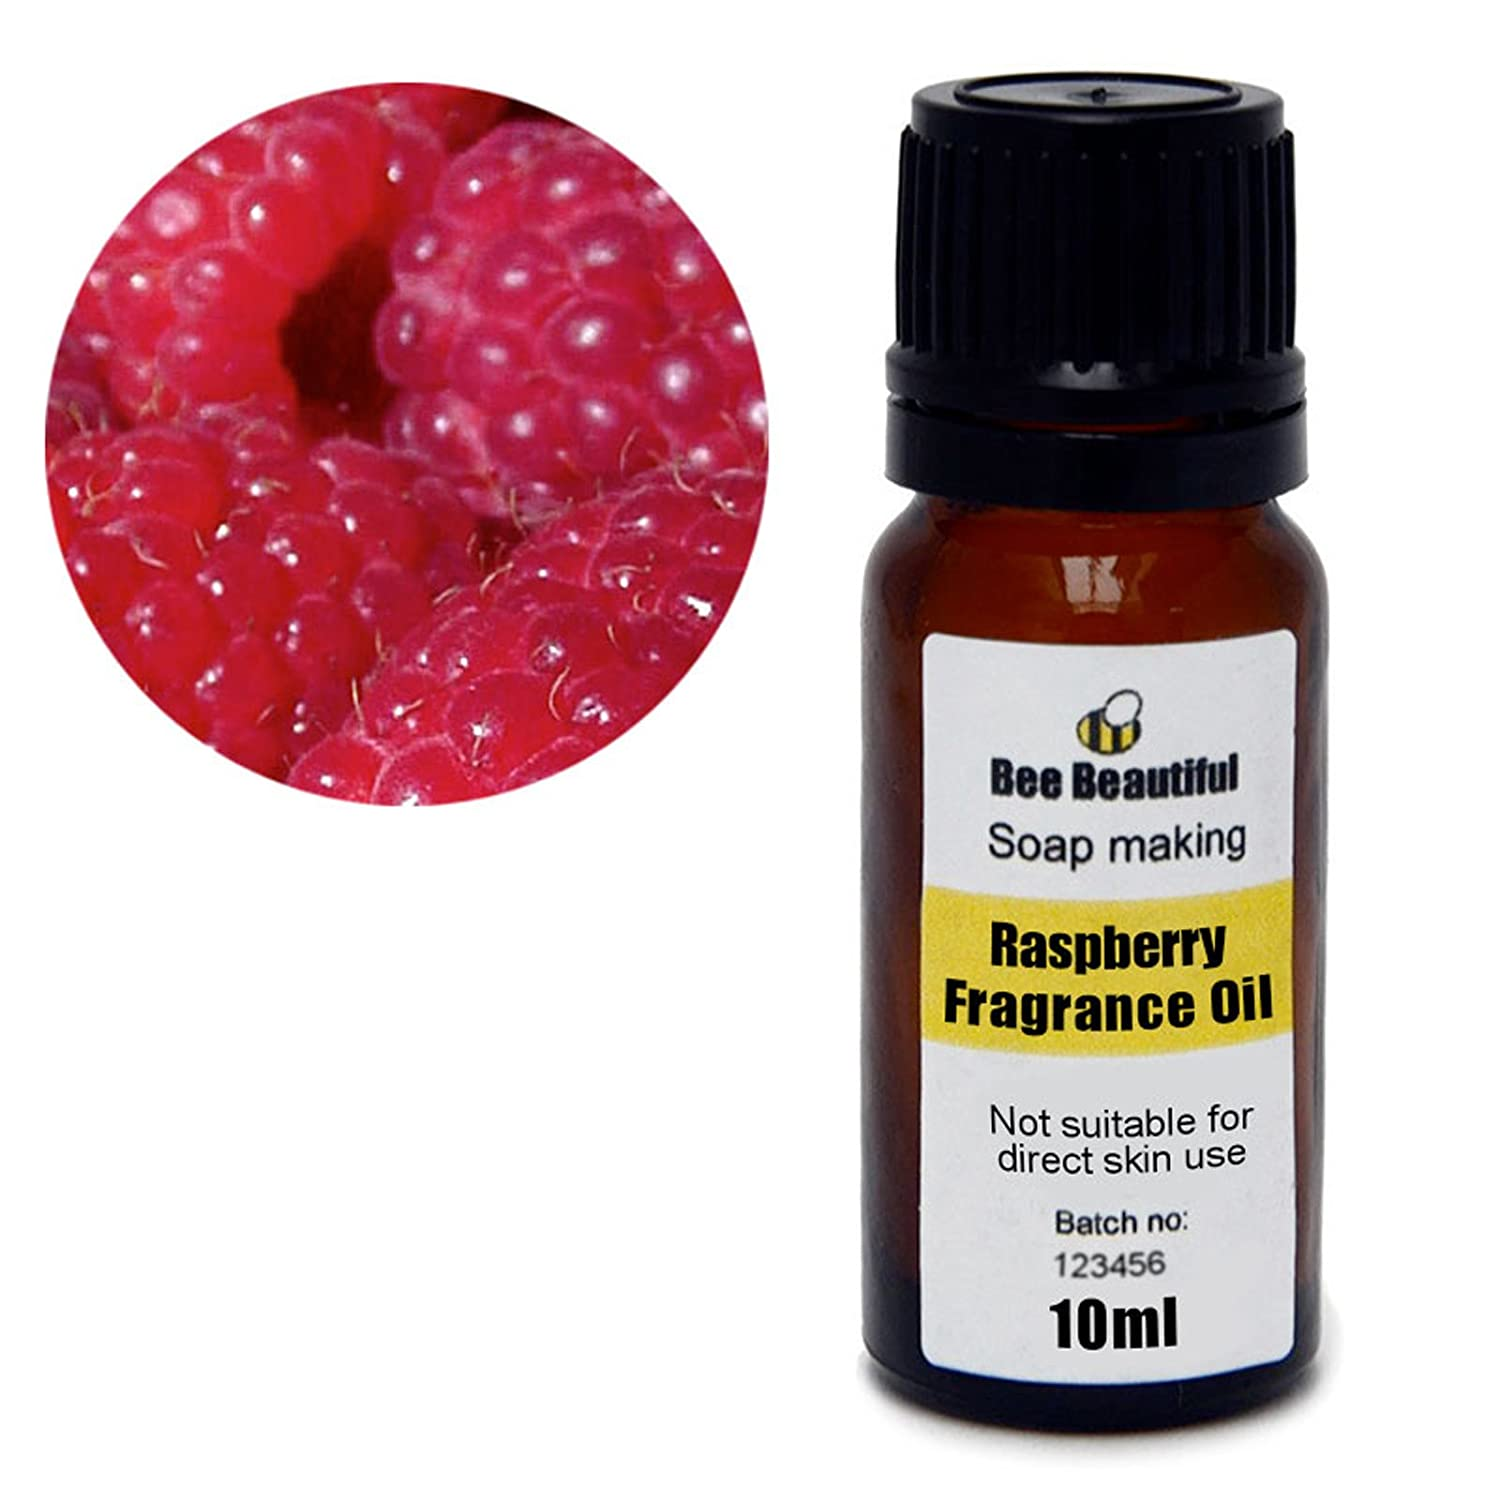 Bee Beautiful 10ml Raspberry Fragrance Oil suitable for soap making and bath bomb making